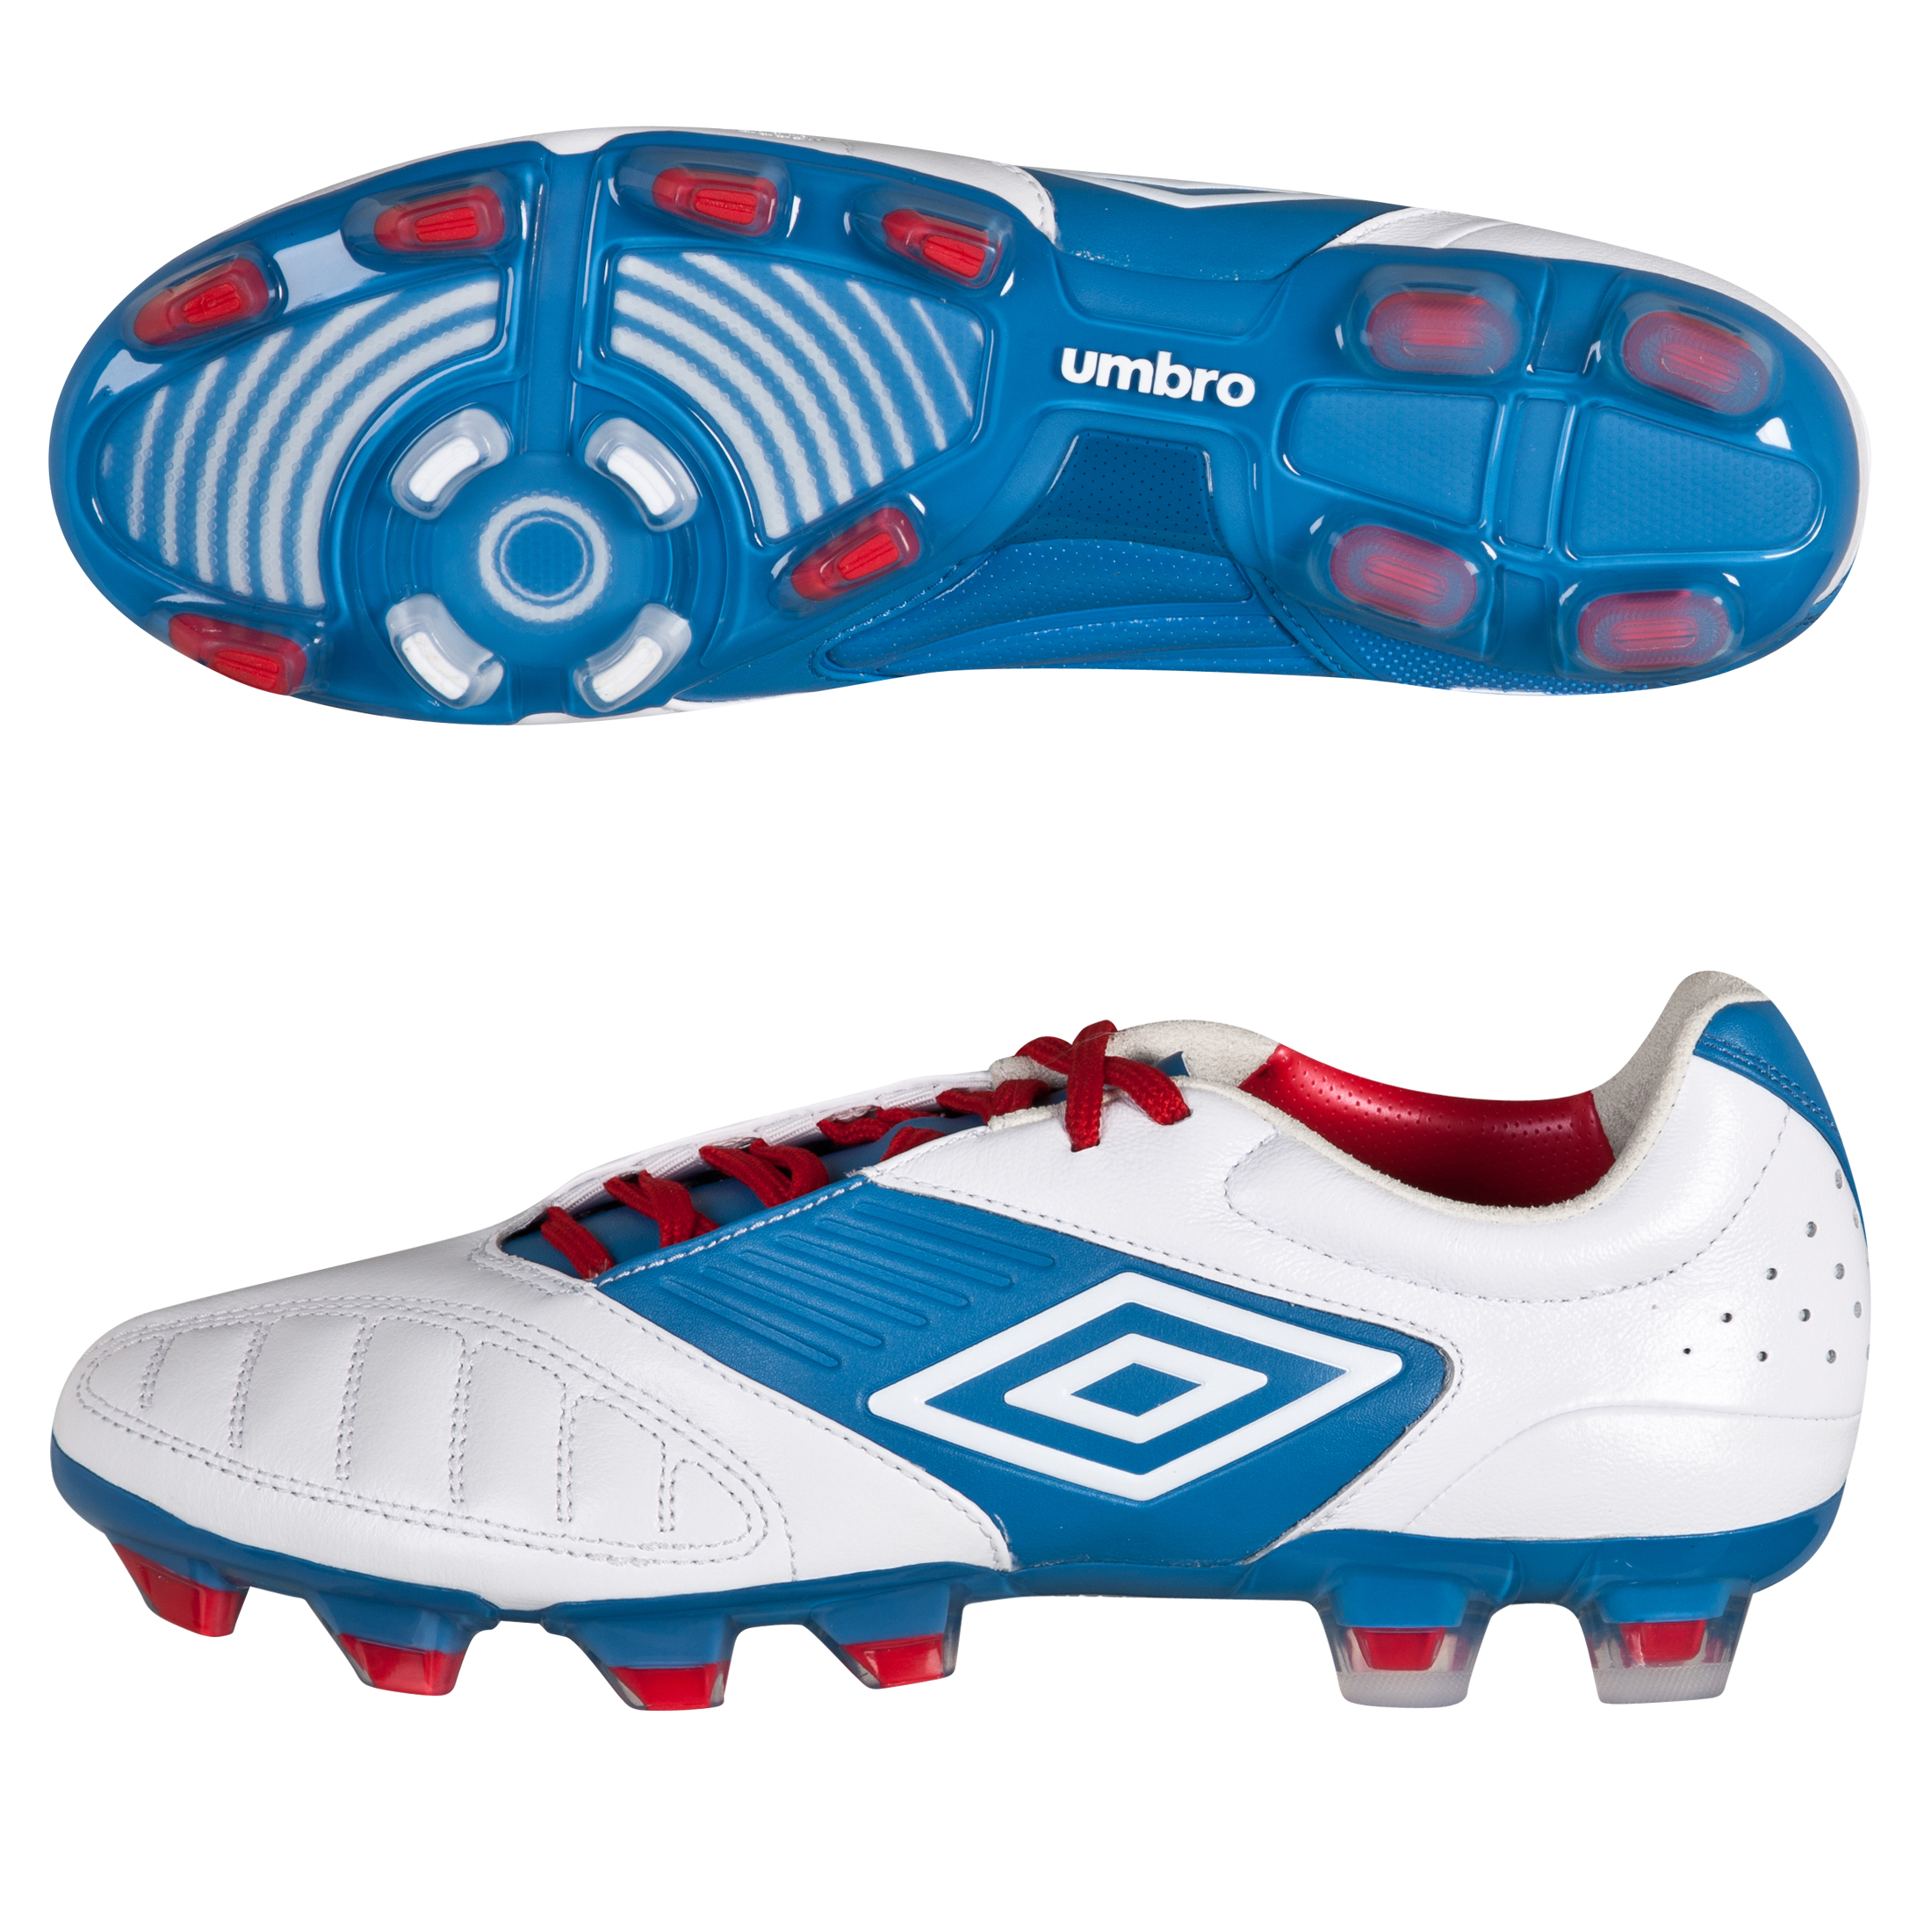 Geometra Pro FG White/Brilliant Blue/True Red